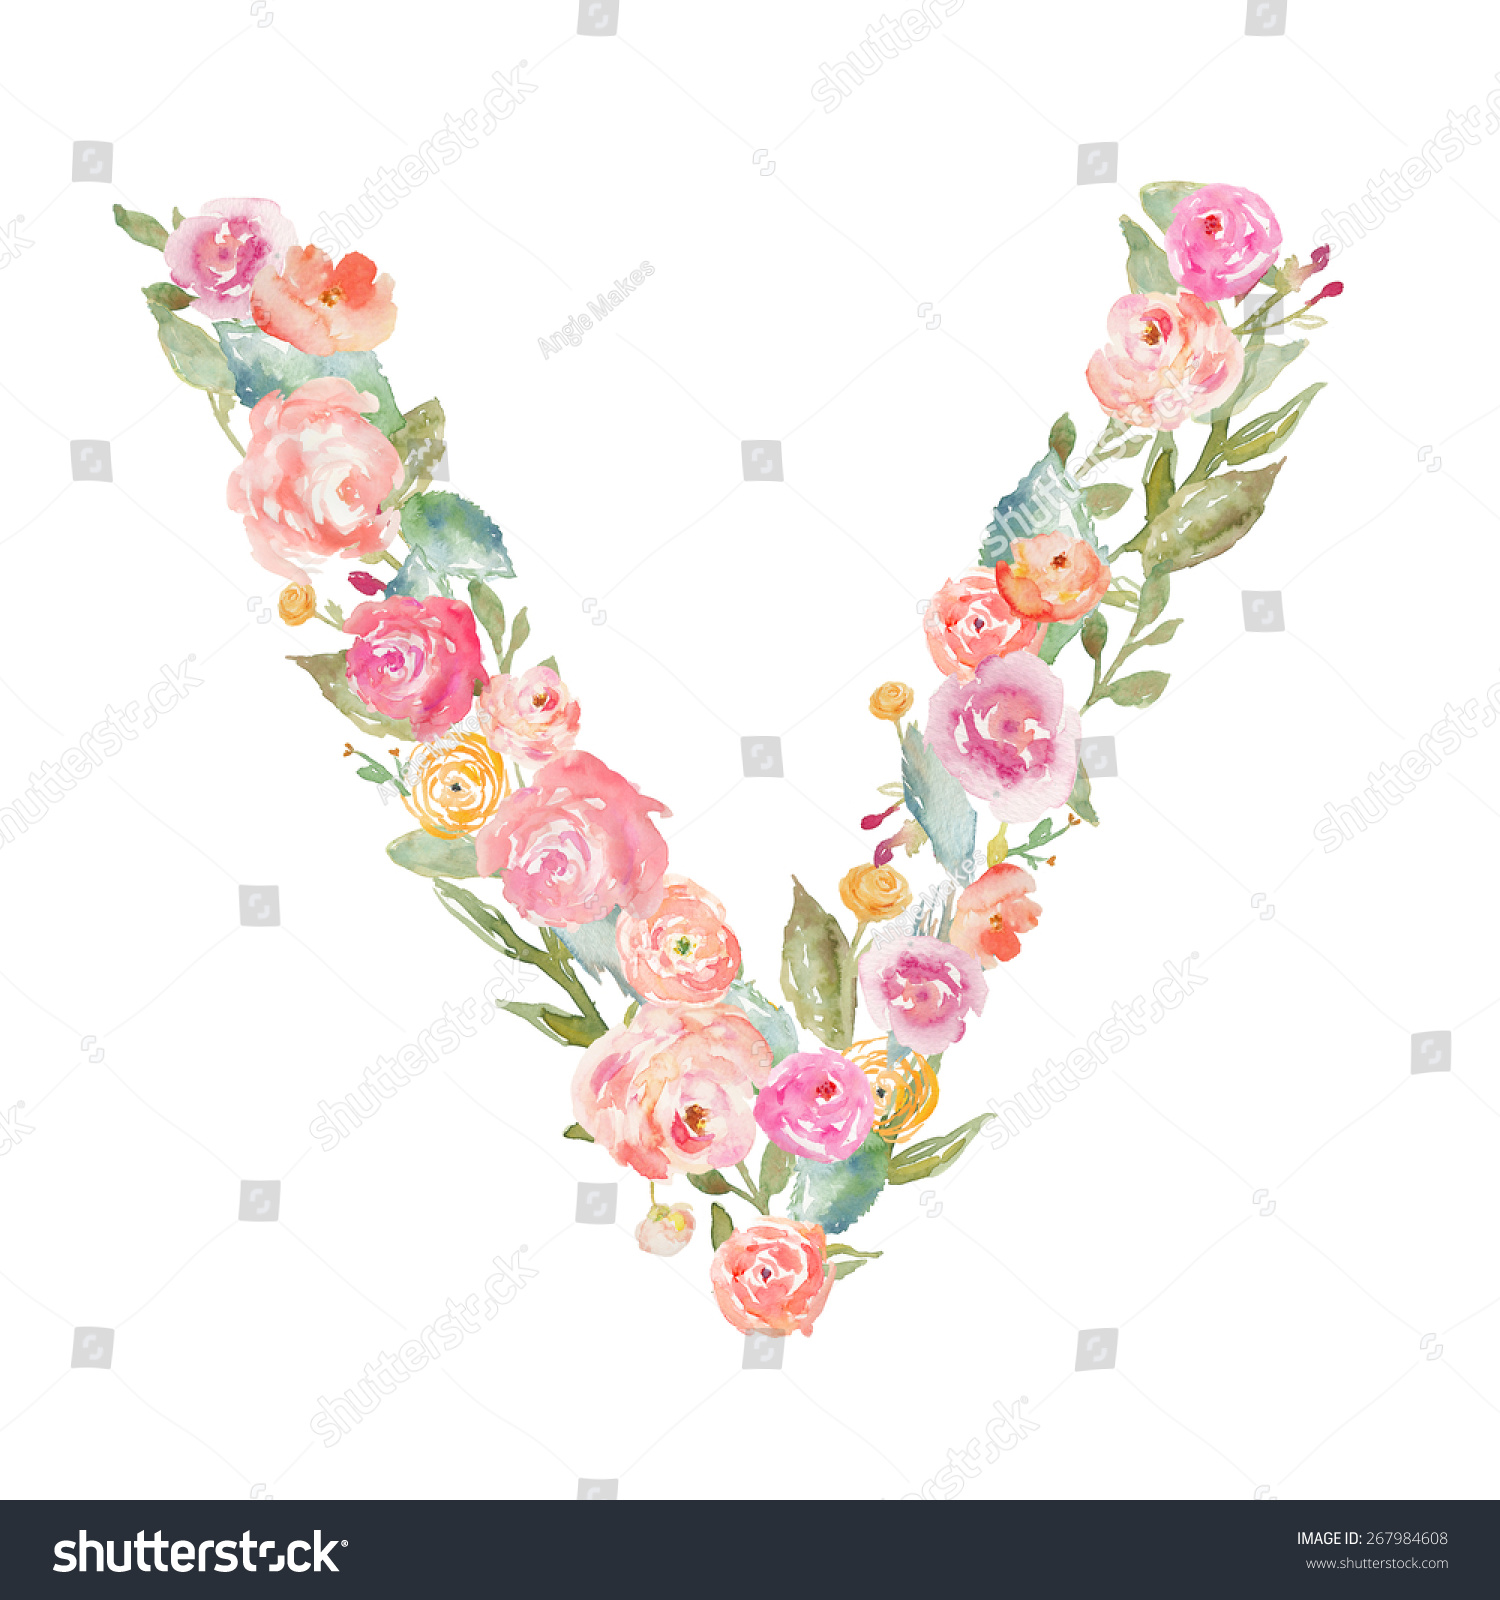 Royalty free watercolor flower alphabet monogram 267984608 watercolor flower alphabet monogram letter v made of flowers 267984608 altavistaventures Choice Image